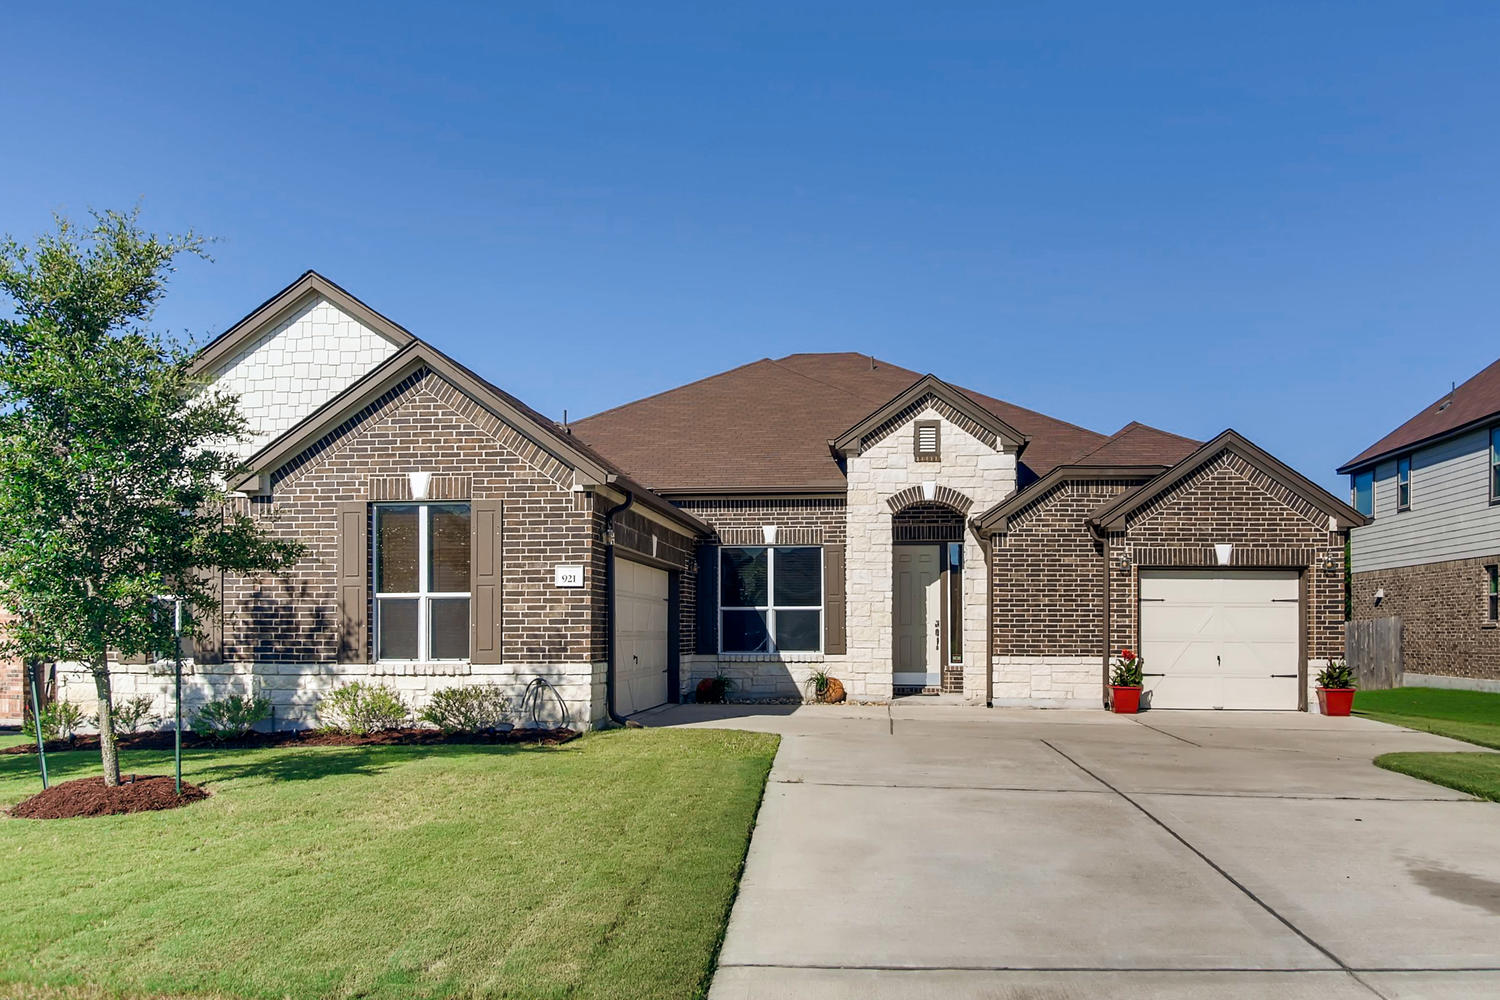 Single Family Homes for Sale at Gorgeous Home in Plugerville 921 Autumn Sage Way, Pflugerville, Texas 78660 United States